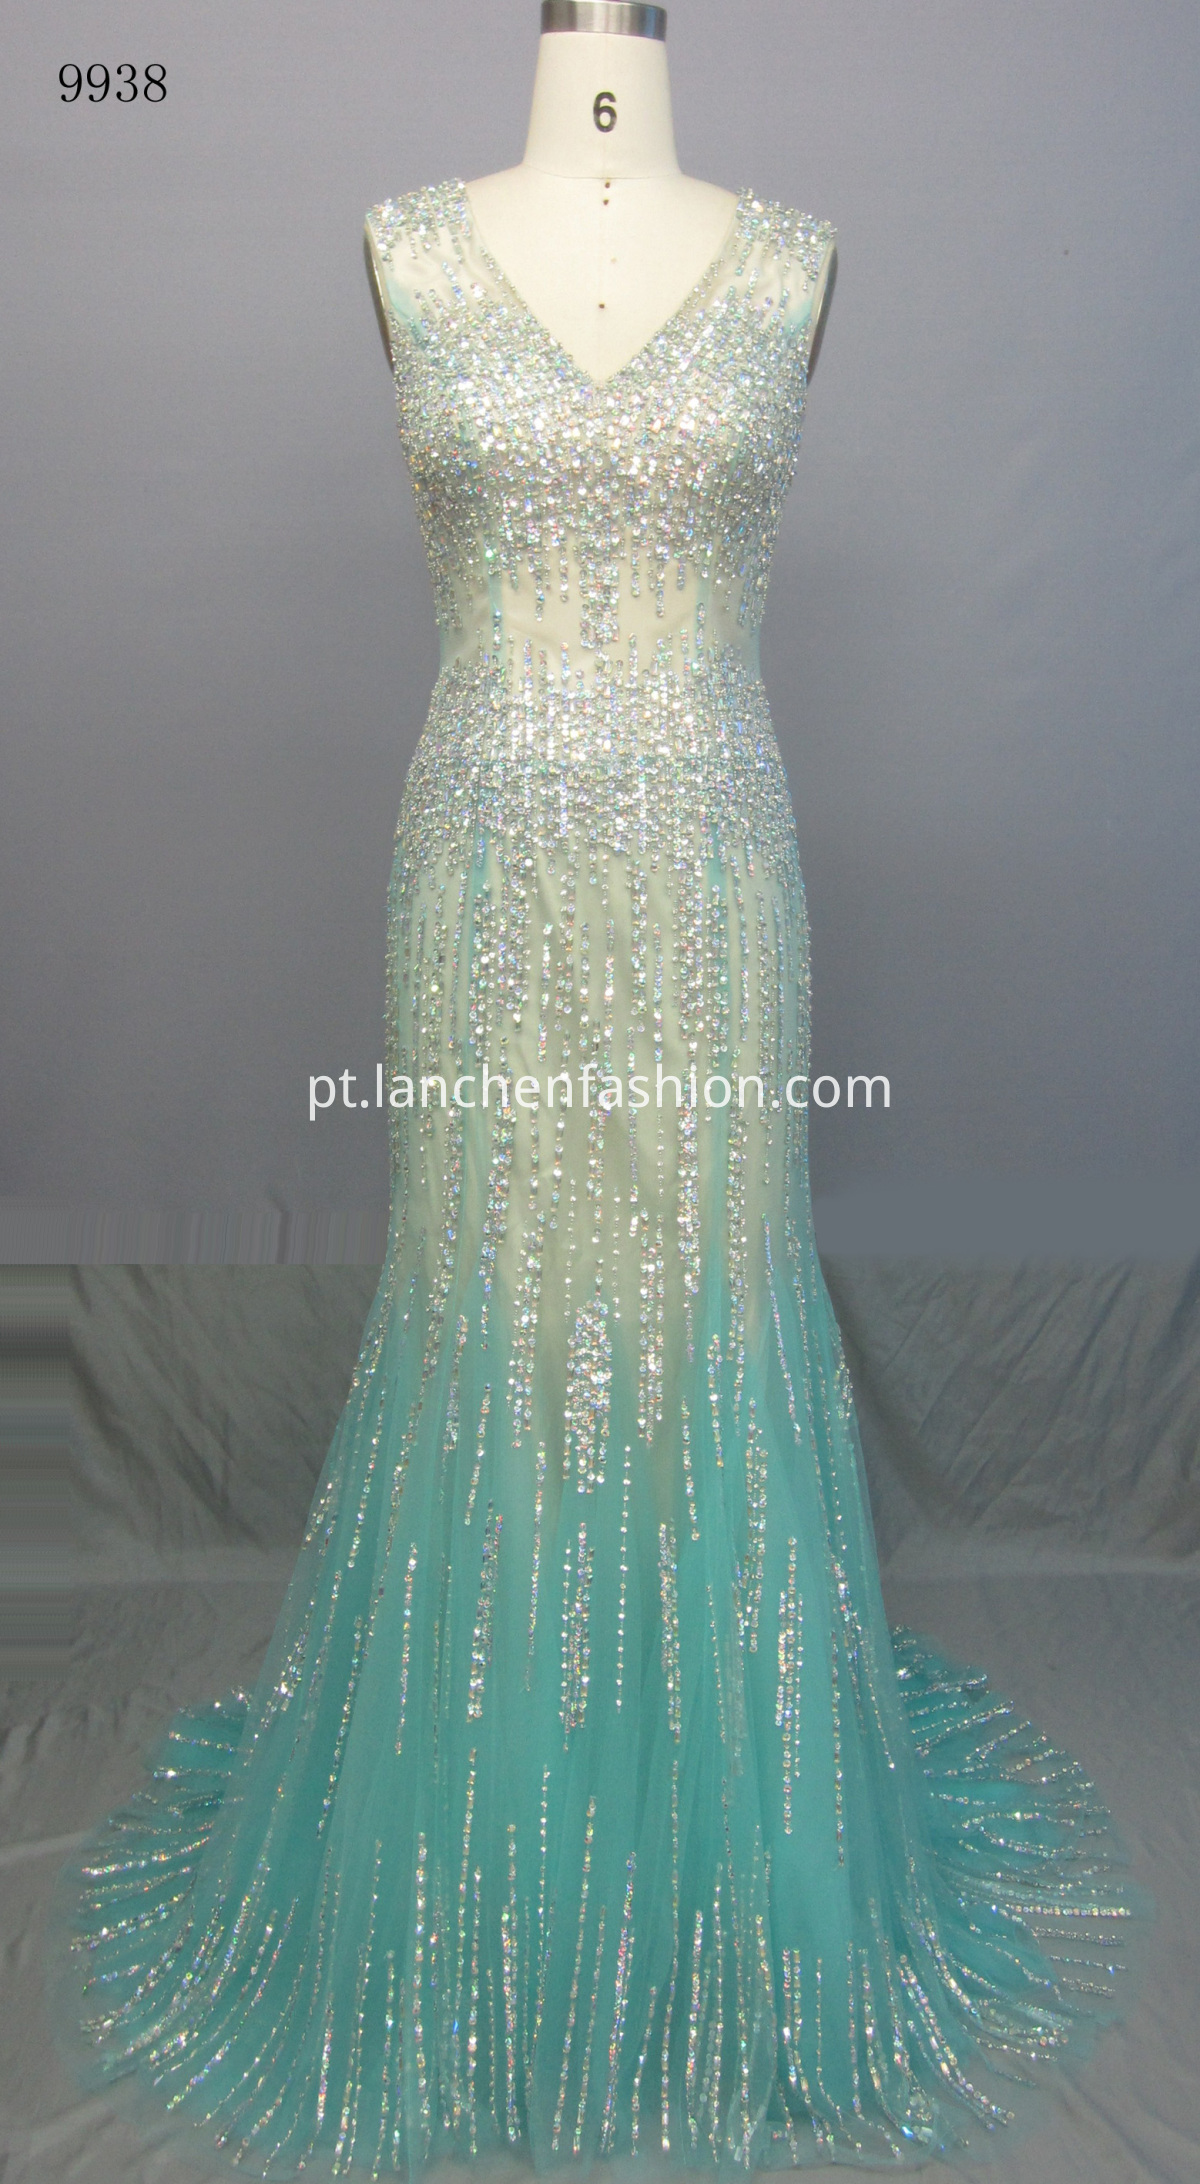 Sleeveless Mermaid Prom Dresses